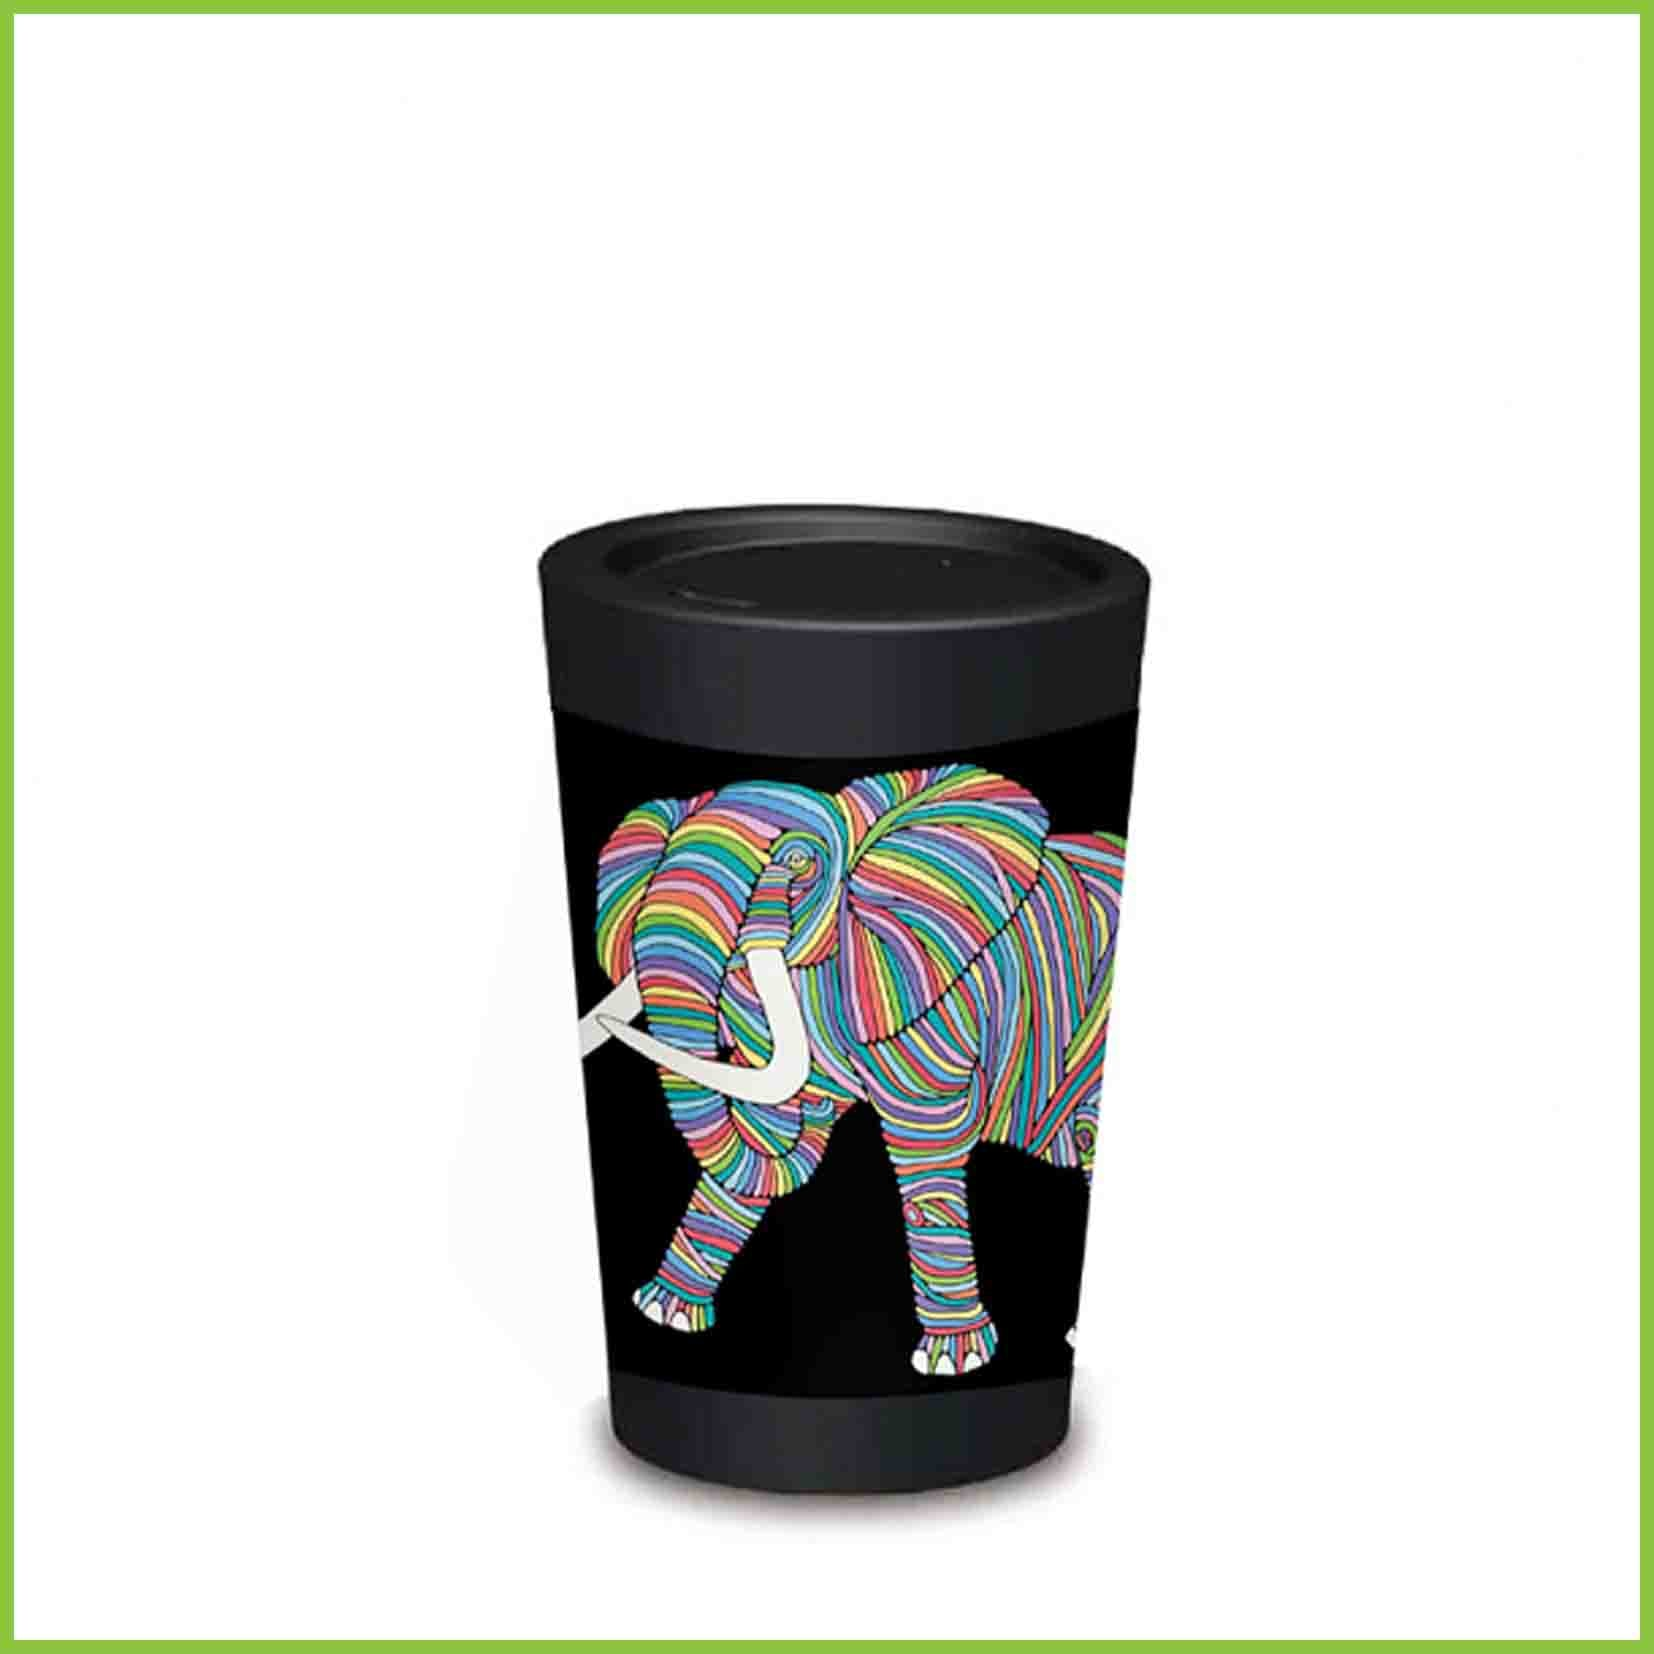 A lightweight reusable cup from CuppaCoffeeCup with a Elephant design.